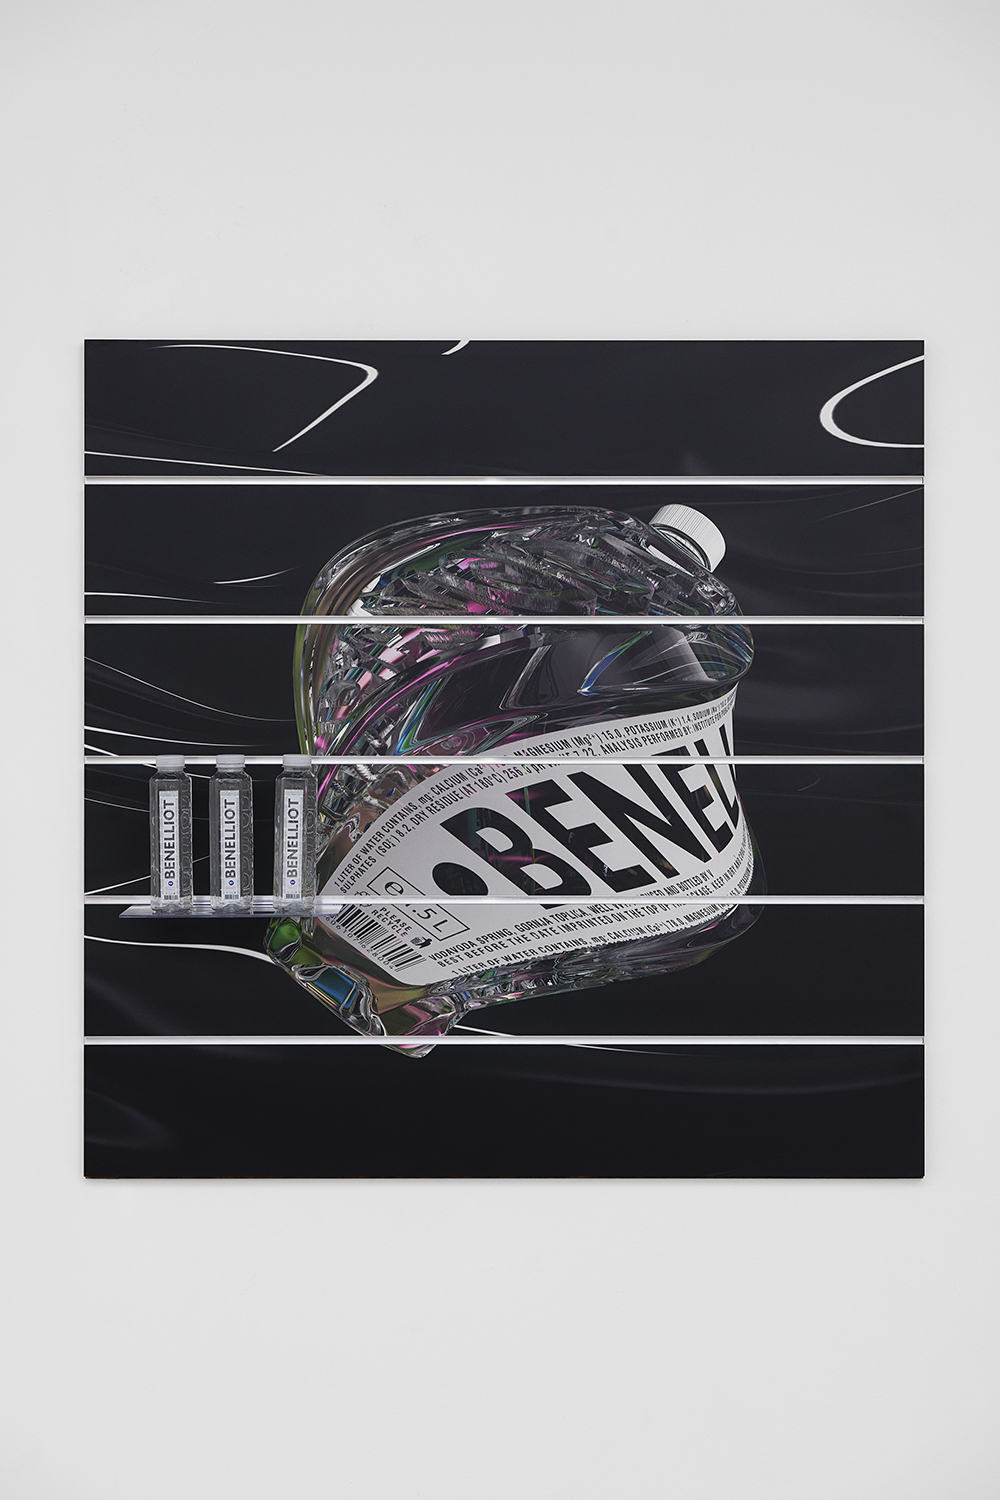 Board (Ben Elliot Water), Ben Elliot, 2019, Unique, Digital print on slatwall panel,  